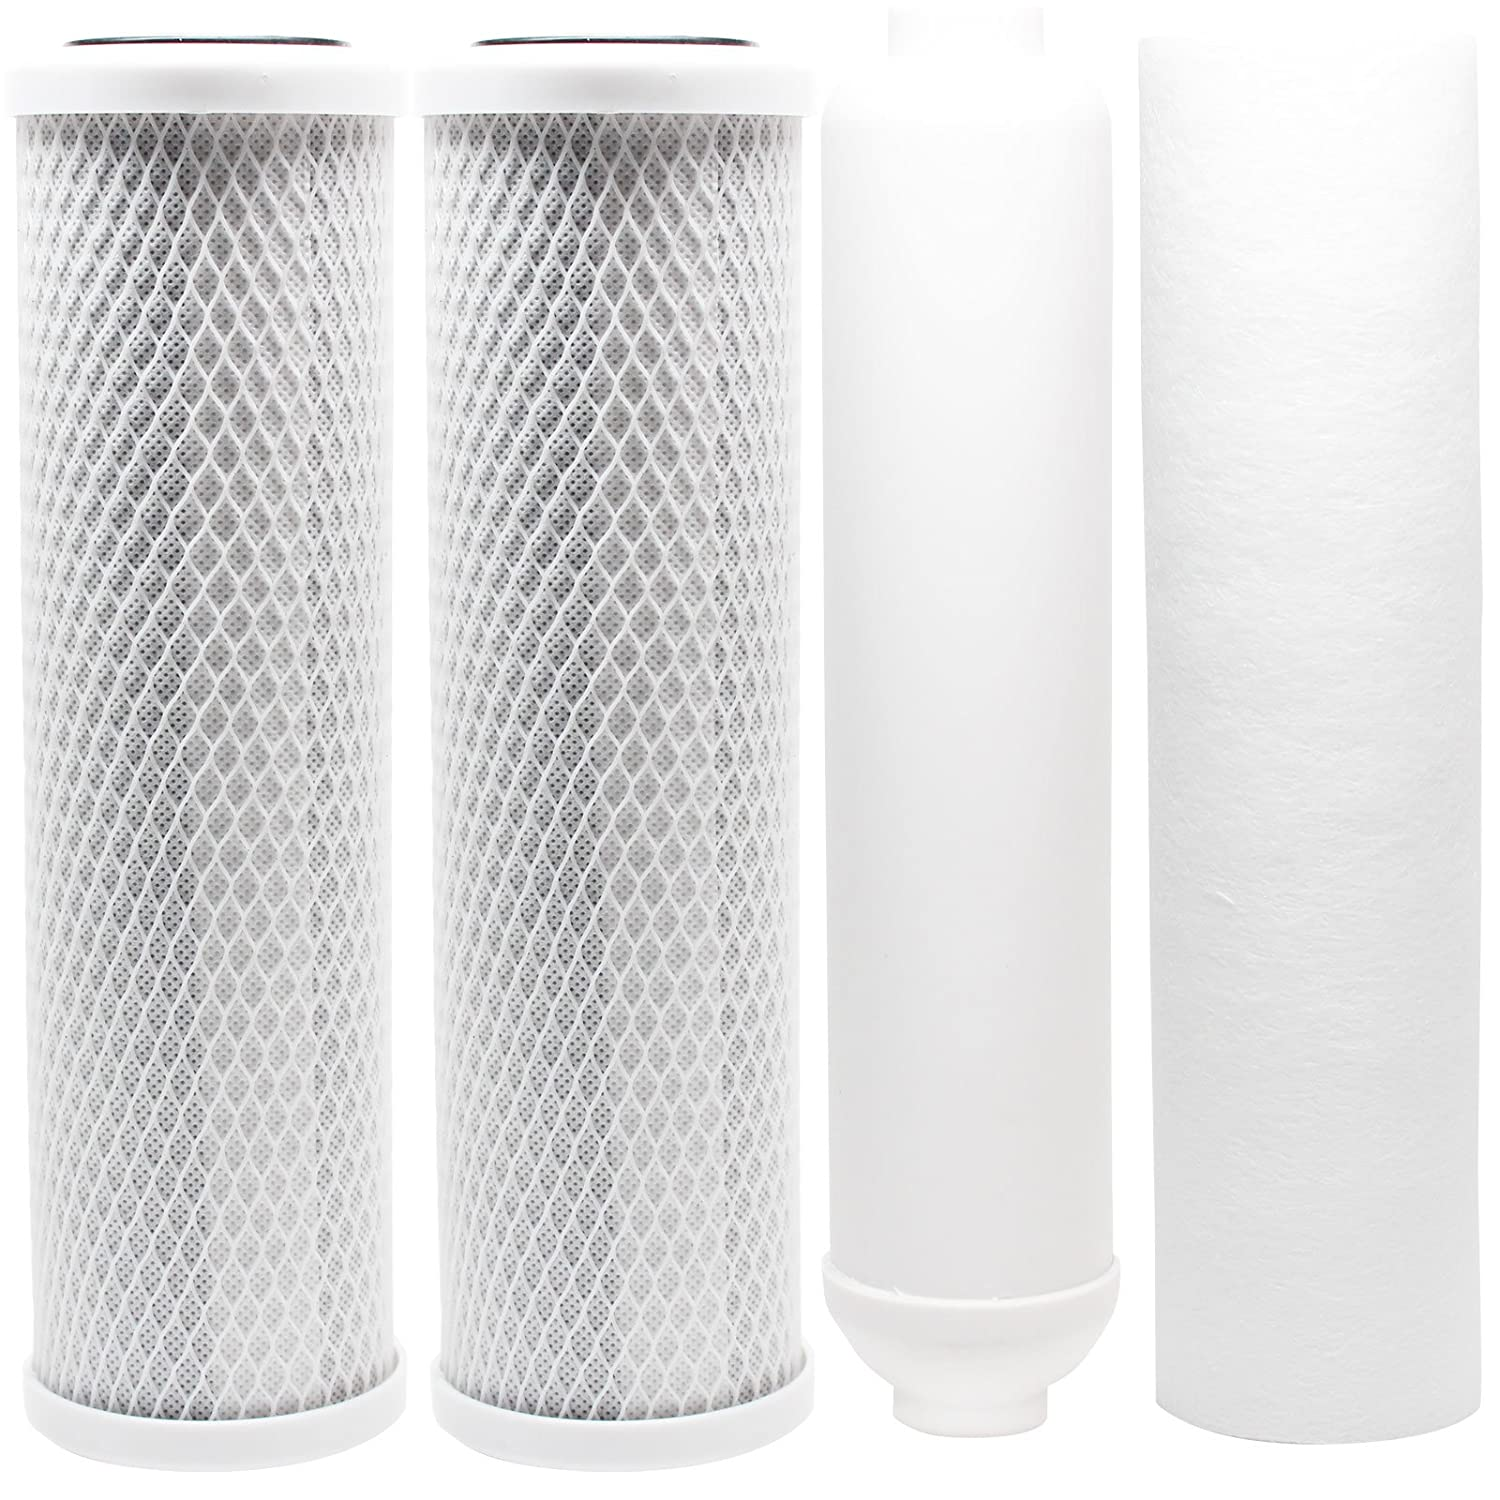 Replacement Filter Kit Compatible with Goldline Goldline-50 RO System - Includes Carbon Block Filters, PP Sediment Filter & Inline Filter Cartridge - Denali Pure Brand